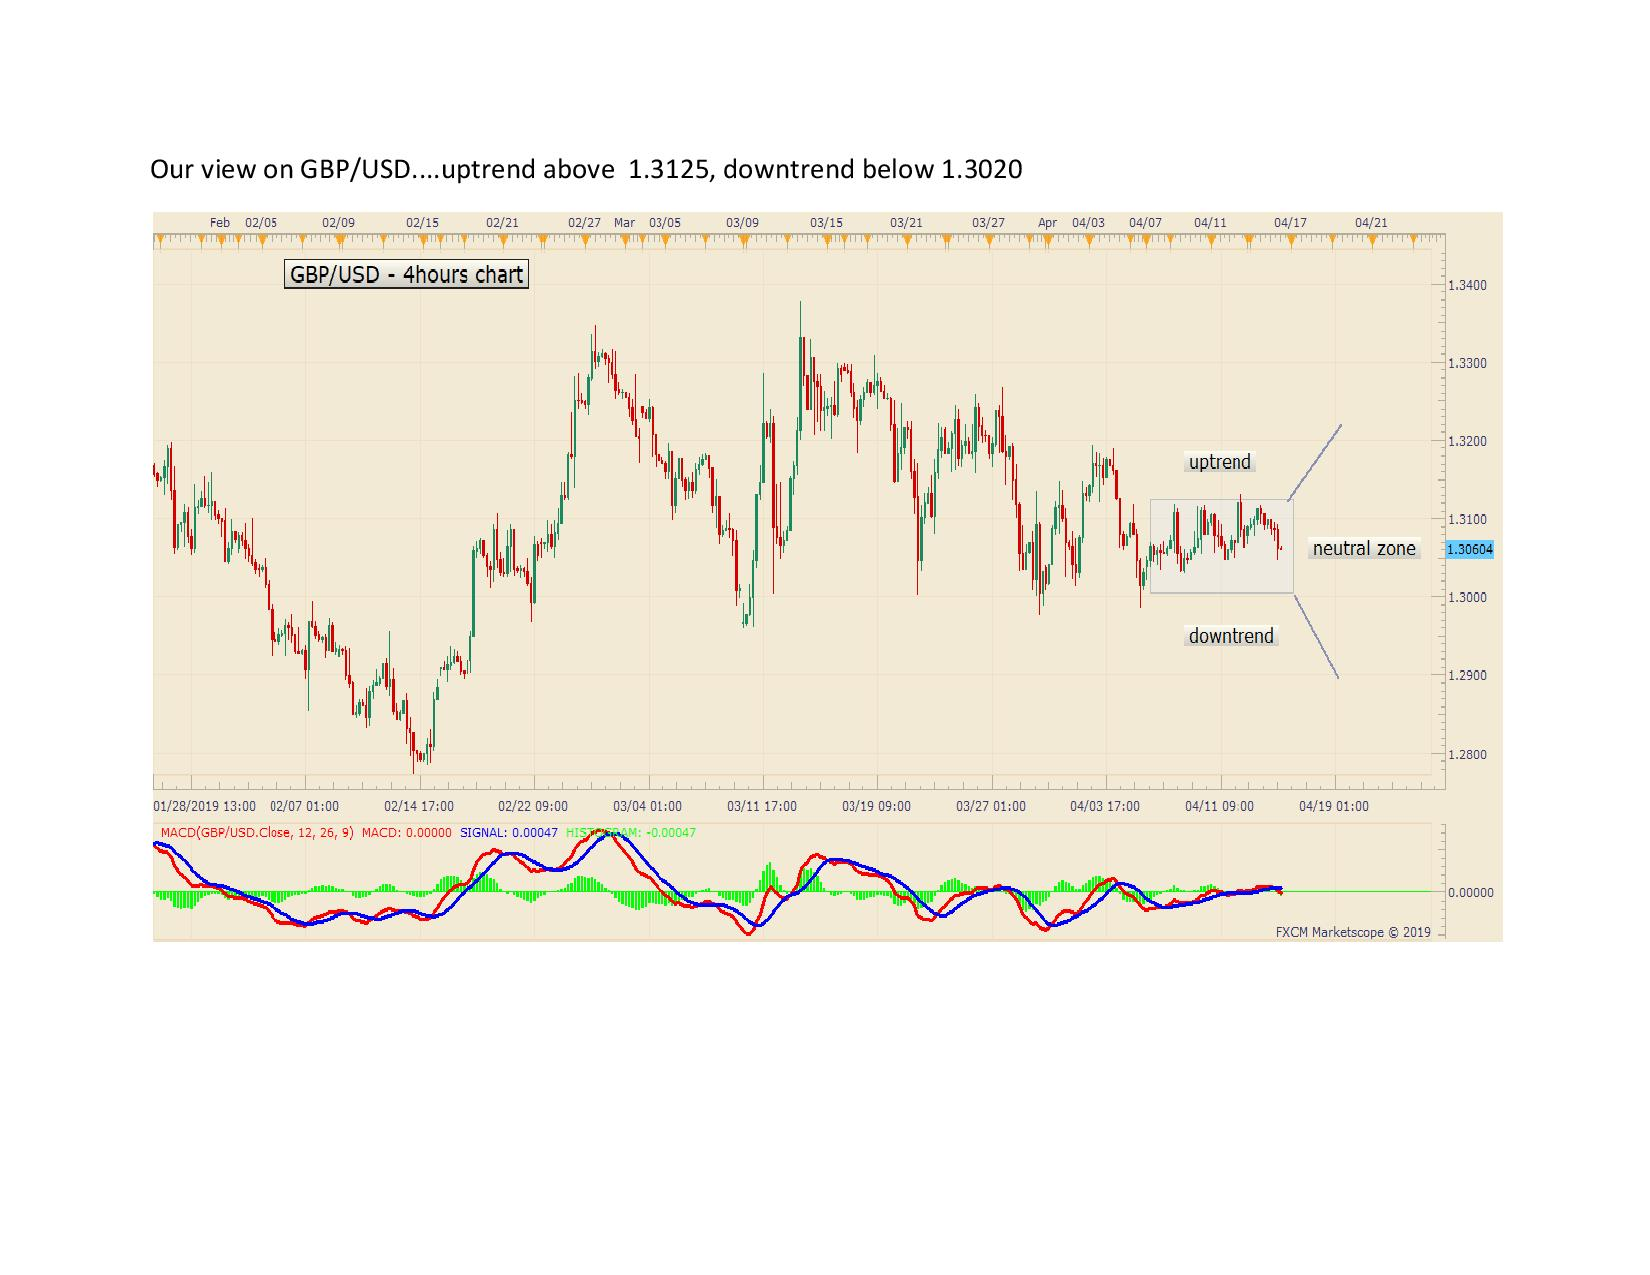 Our view on GBPUSD page 001